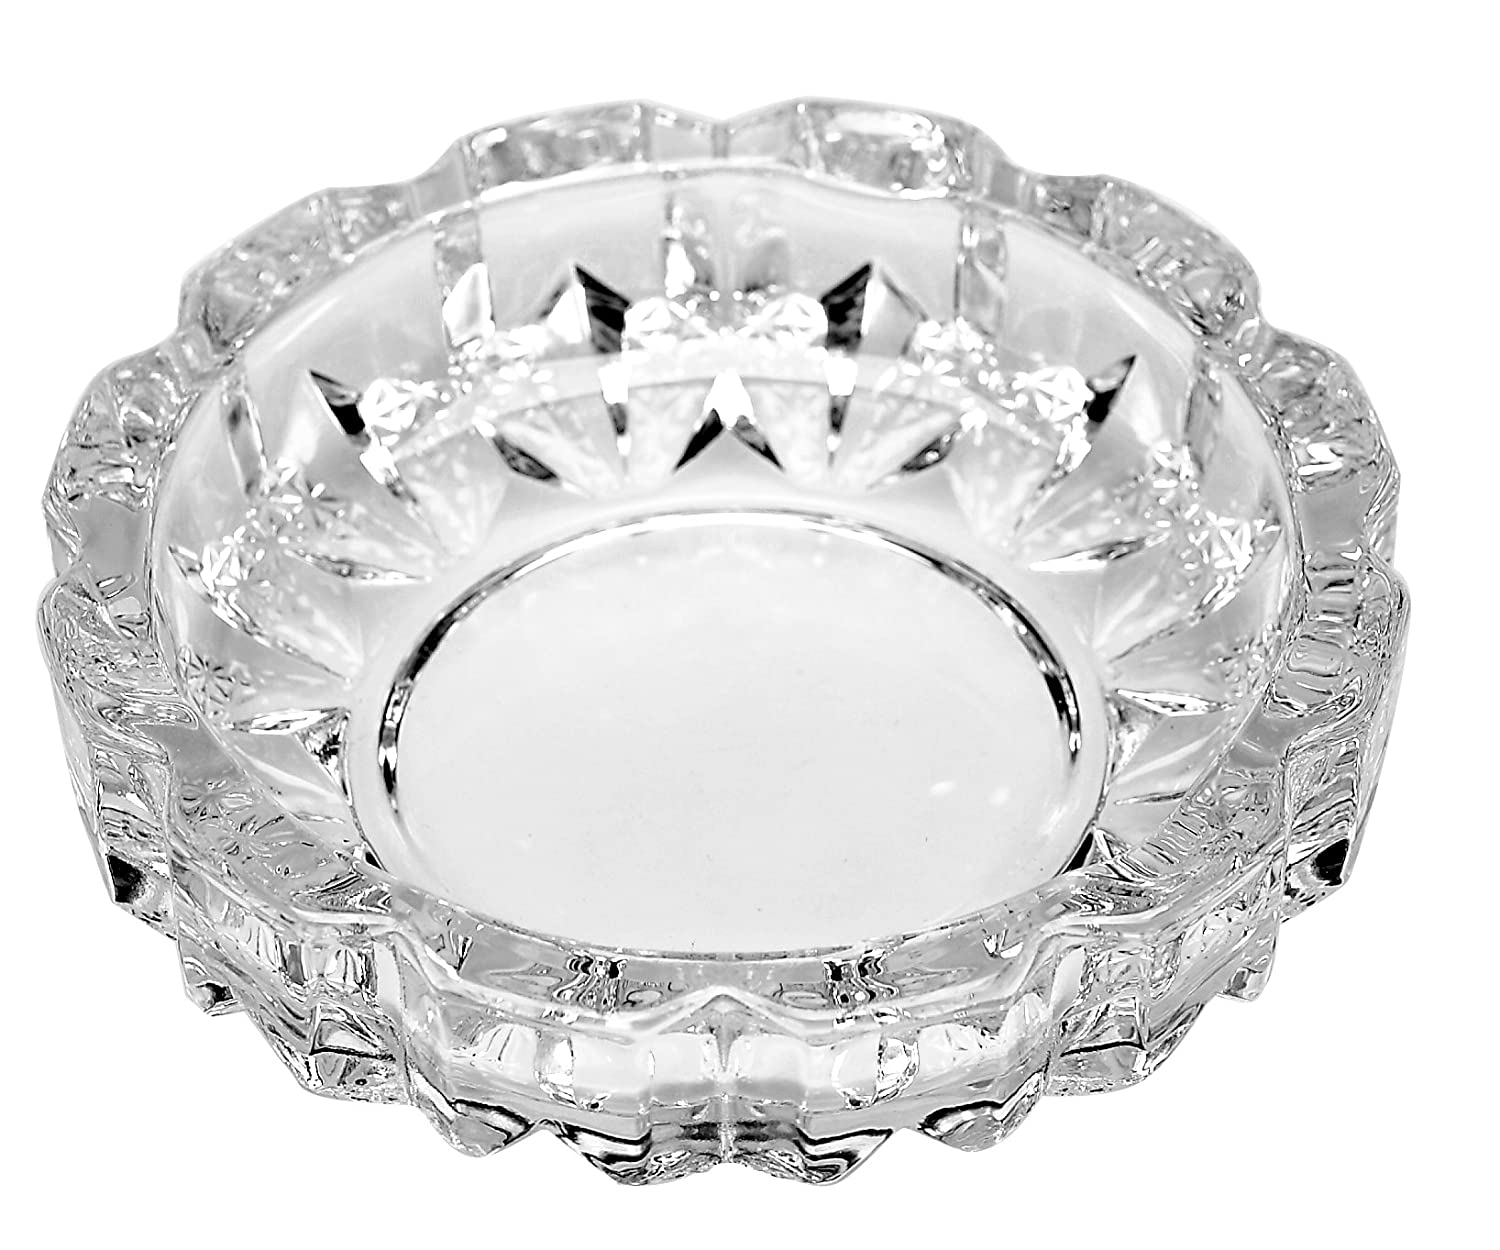 ALL FOR YOU Deli Green Apple Crystal Heavy Glass Ashtray for Indoor and Outdoor Decorative (Round) 2049R